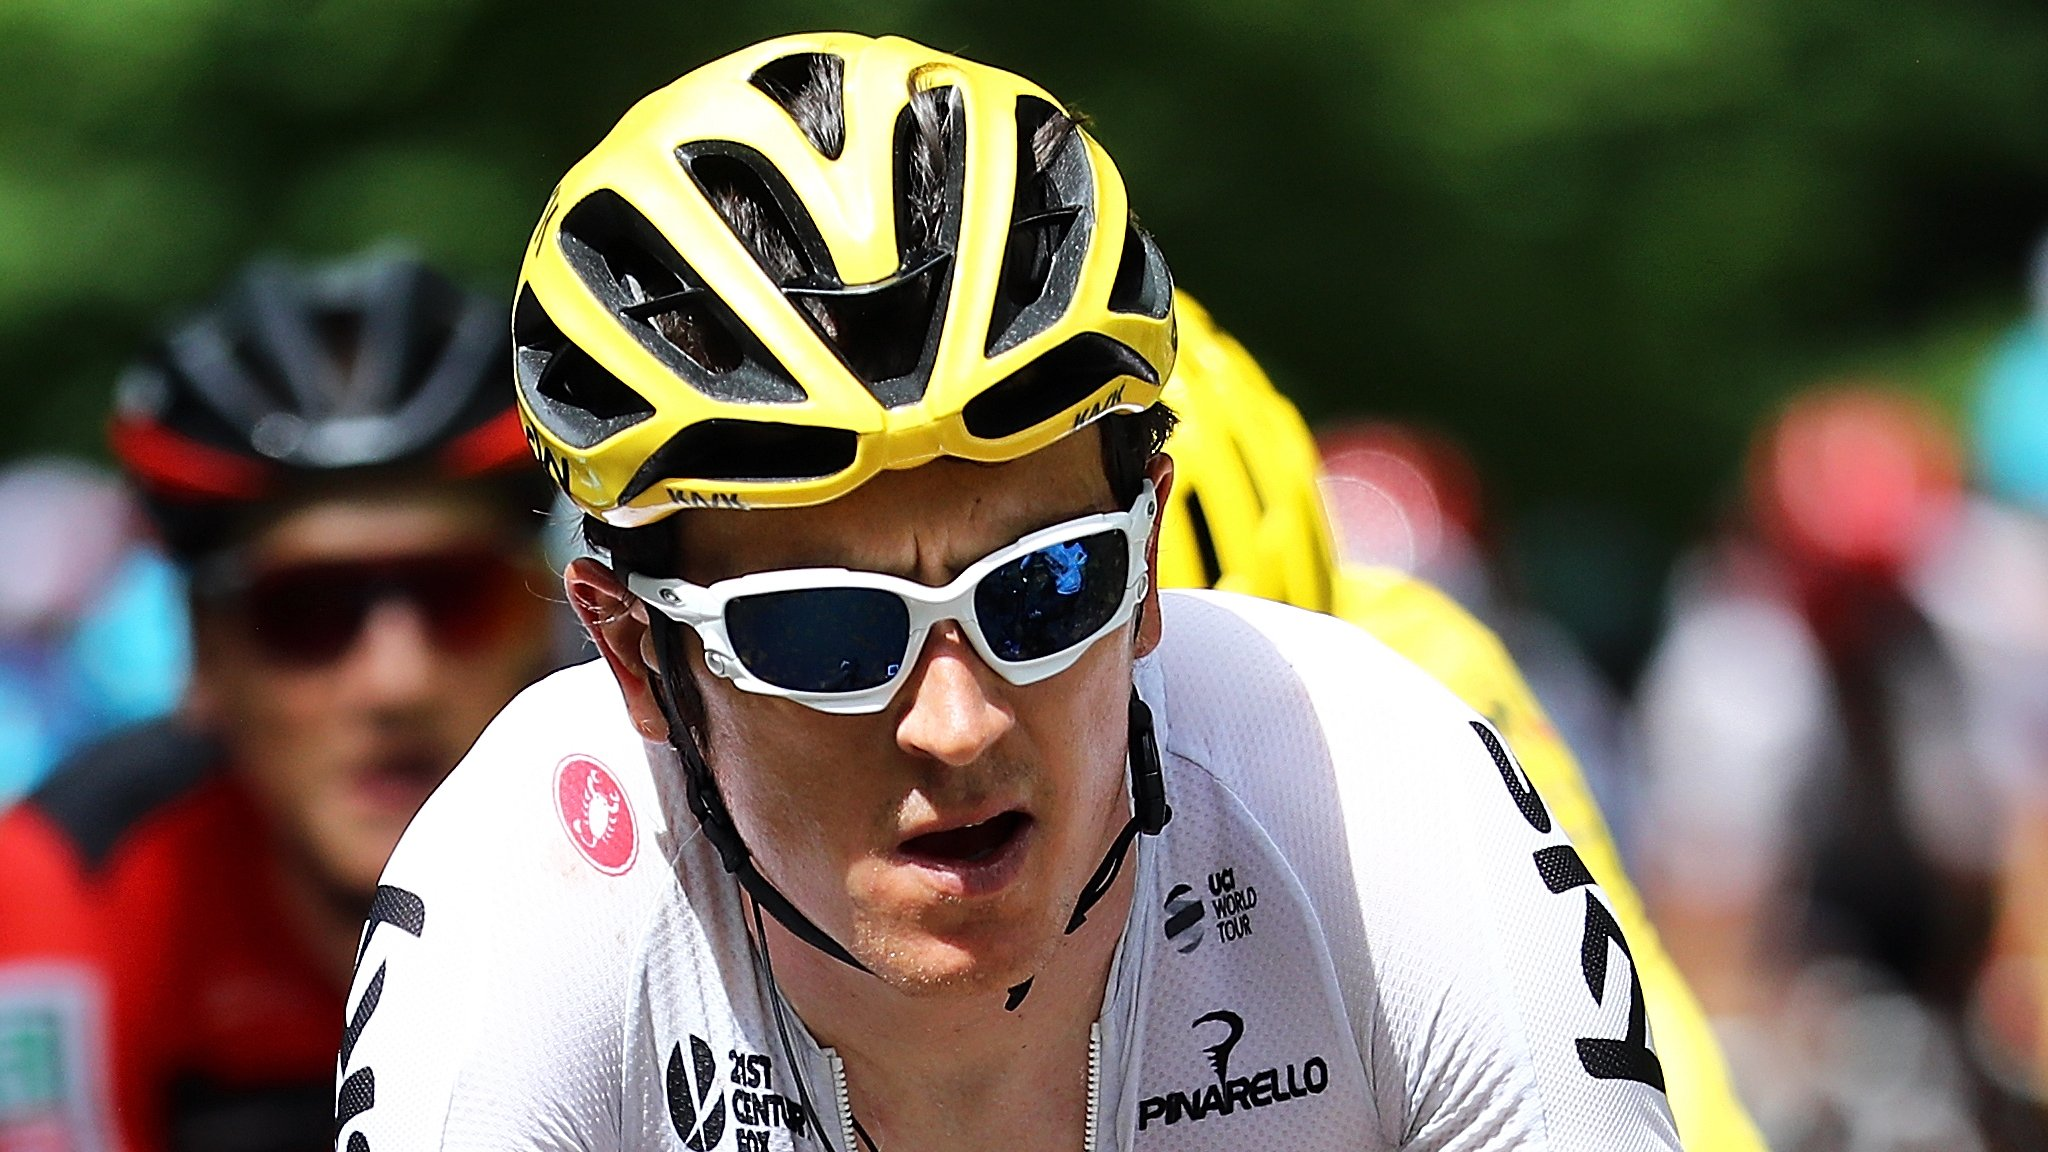 Volta ao Algarve: Team Sky's Geraint Thomas loses on last Algarve stage